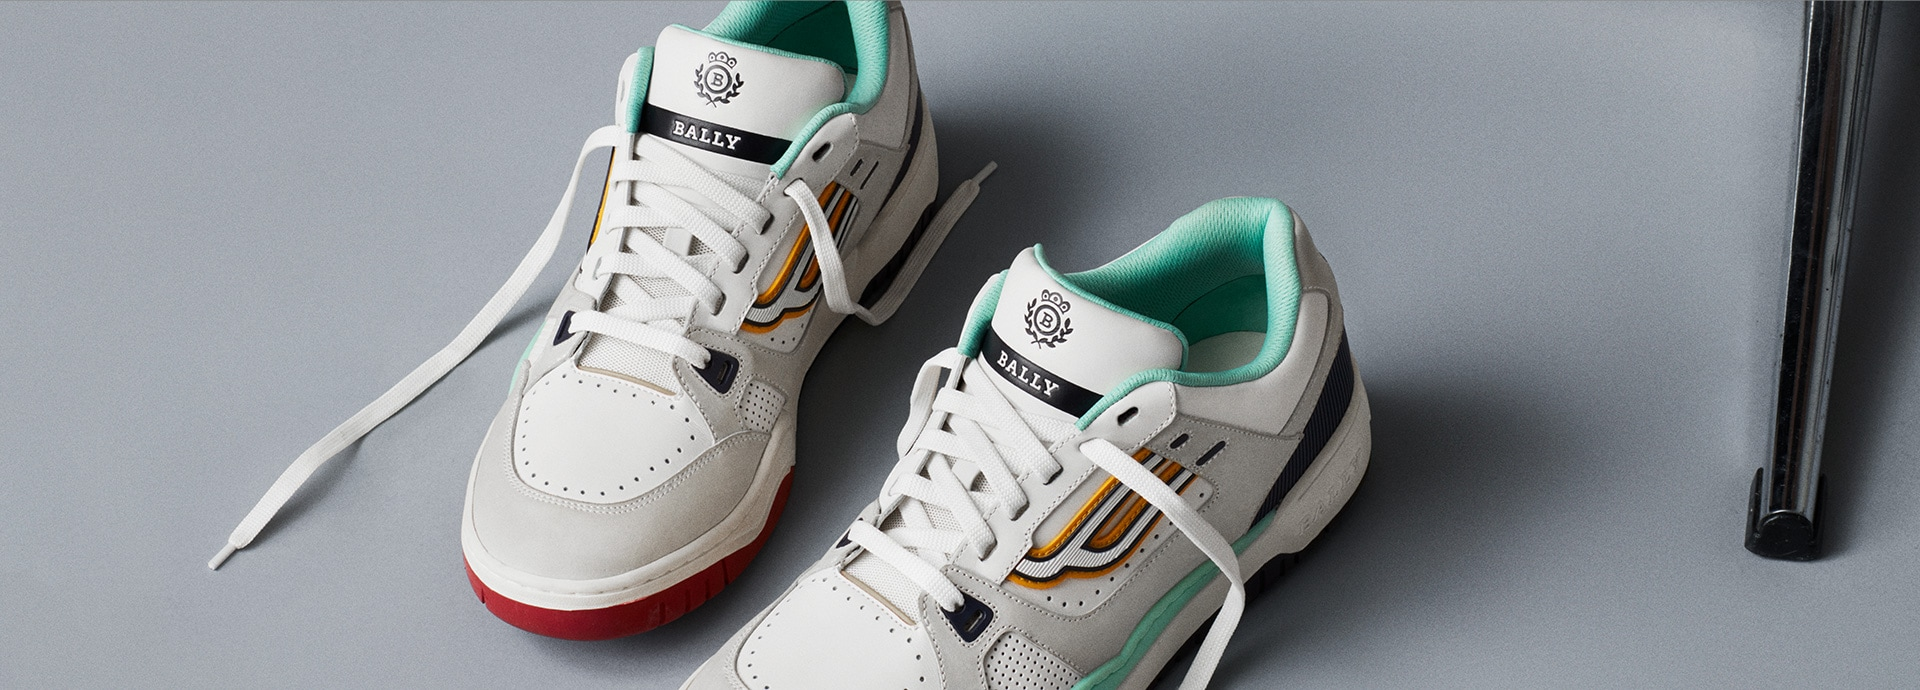 17818ae83 Champion sneakers